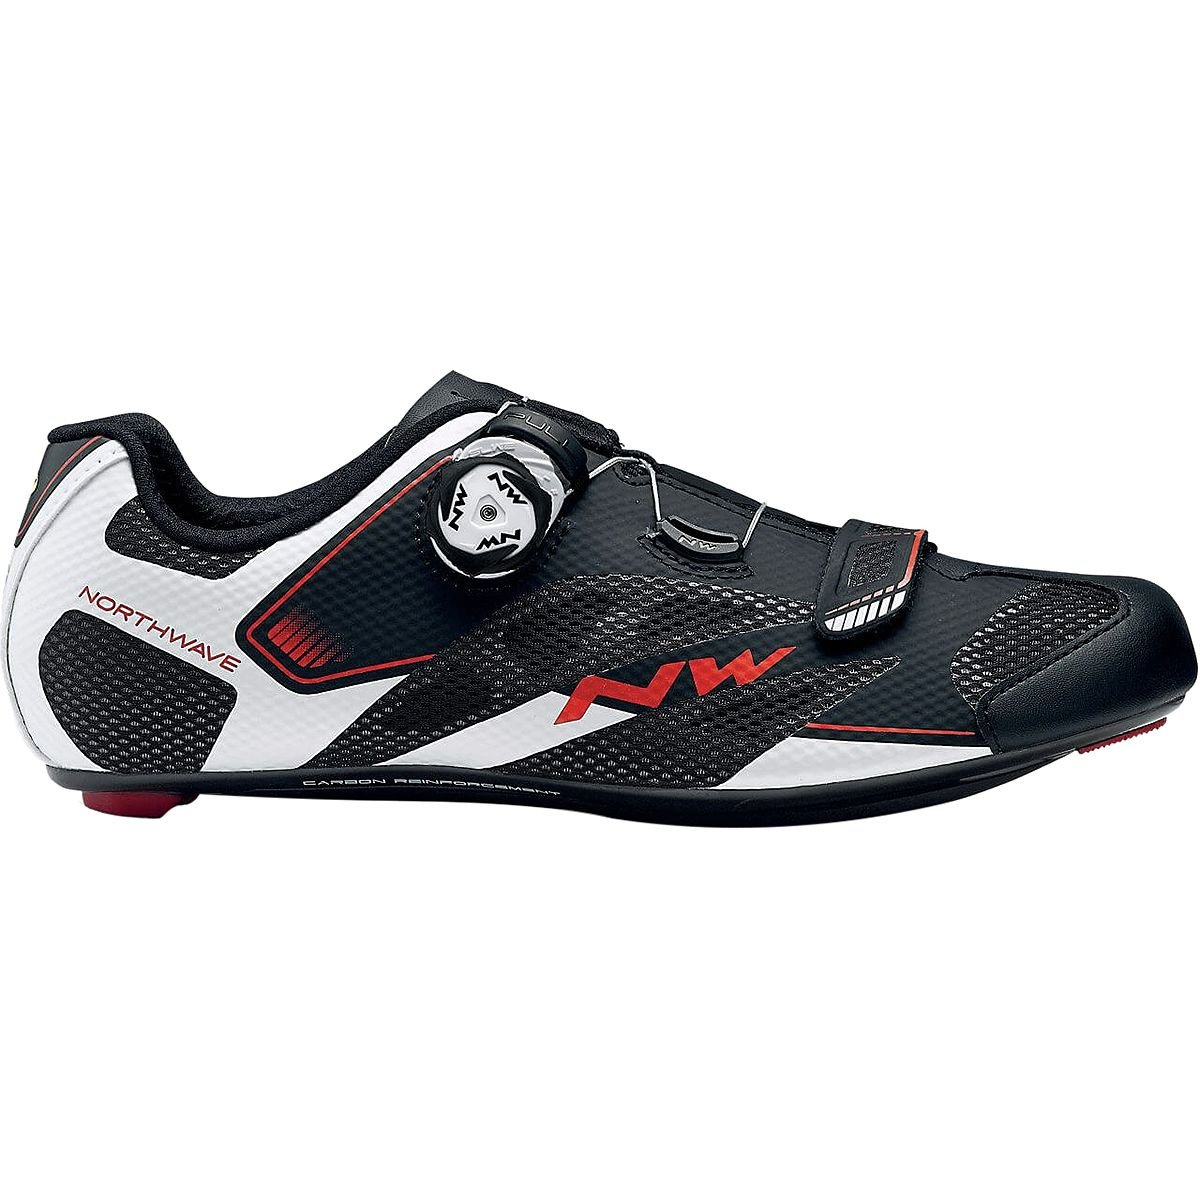 Northwave Sonic 2 Plus Wide Cycling Shoe – Men 'sブラック/ホワイト/レッド42.5   B07BM93L7T